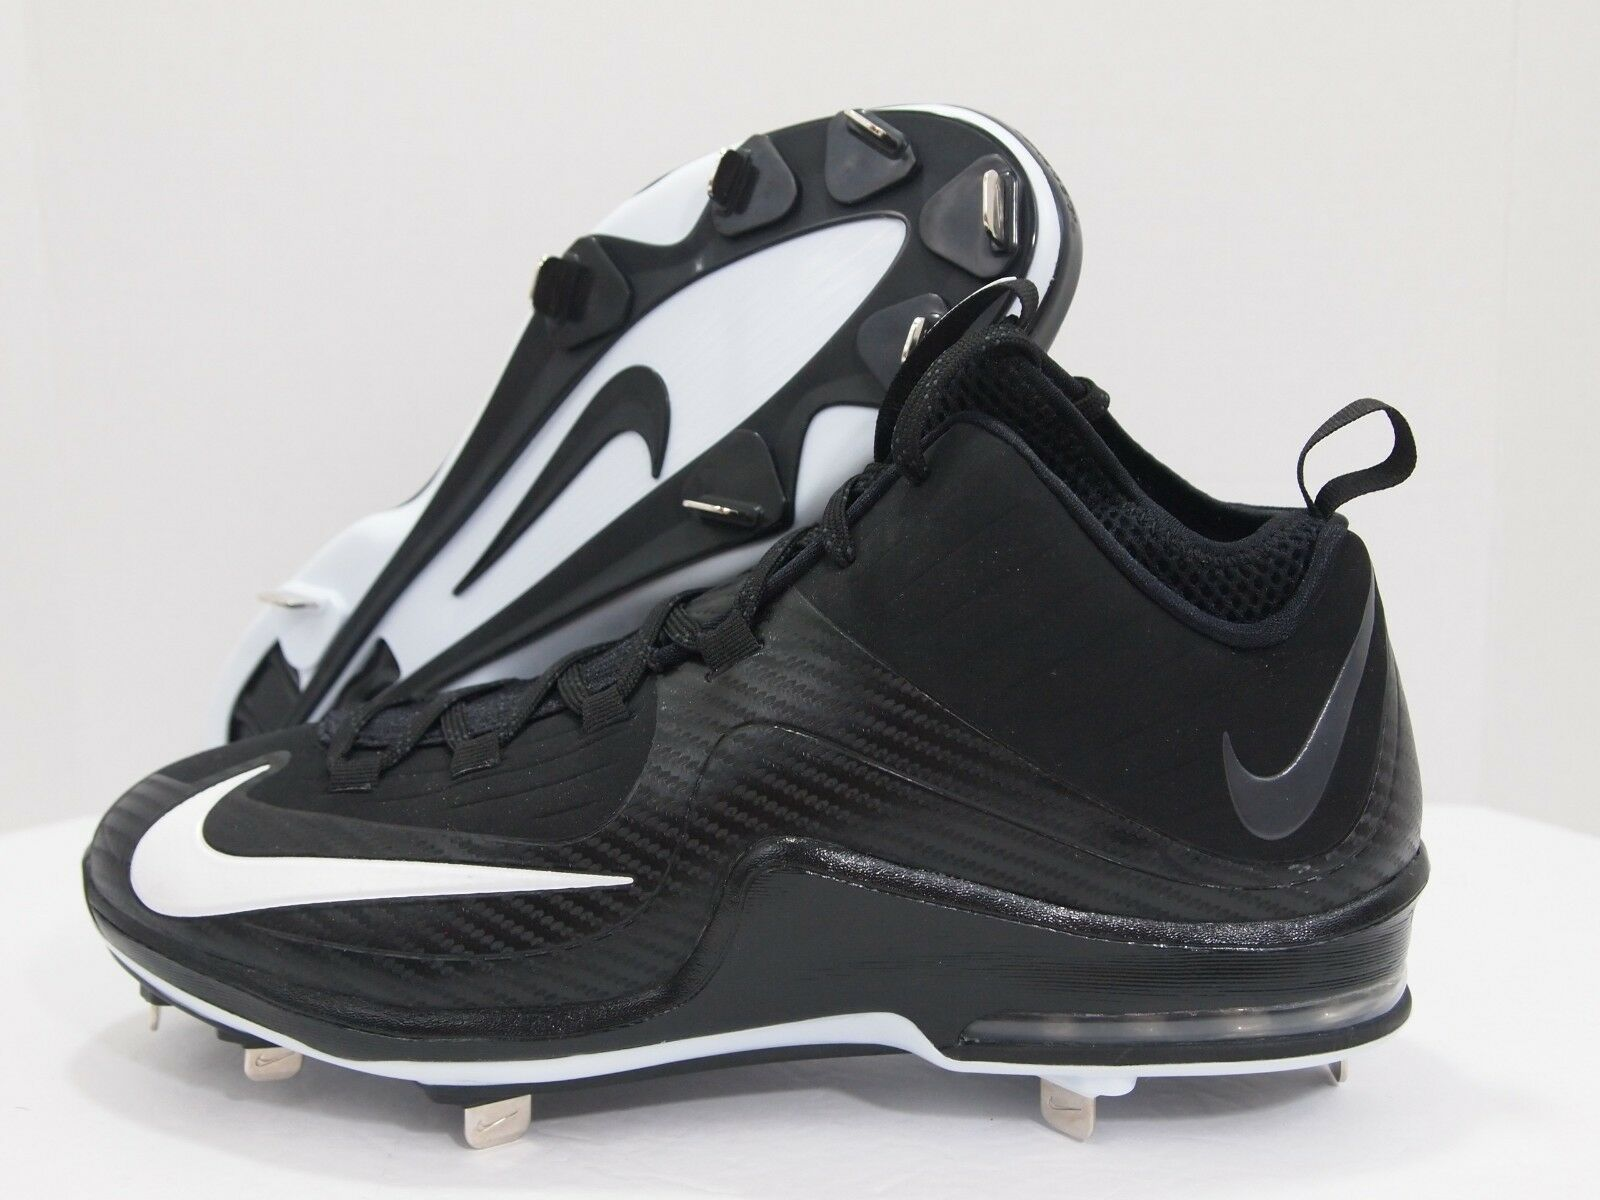 Special limited time Nike Air Max MVP Elite 2  - SIZE 12.5 - Men's 3/4 Metal Baseball Cleats. Black